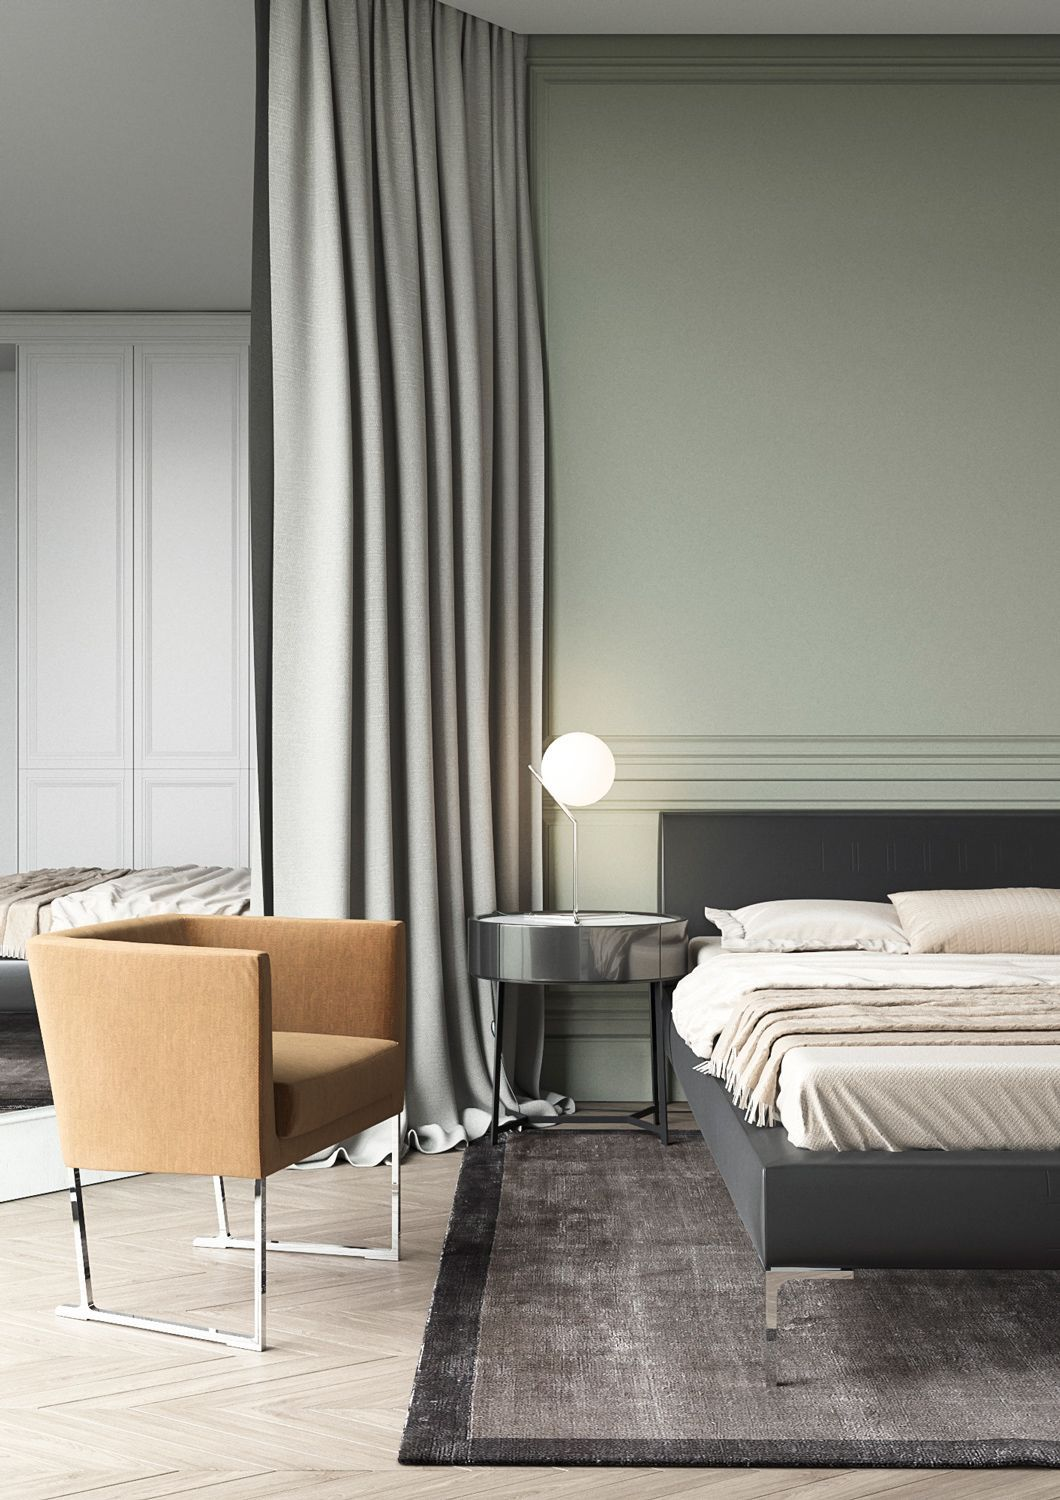 Luxury Hotel Bedrooms: Cheap Living Room Decor - SalePrice:16$ In 2020